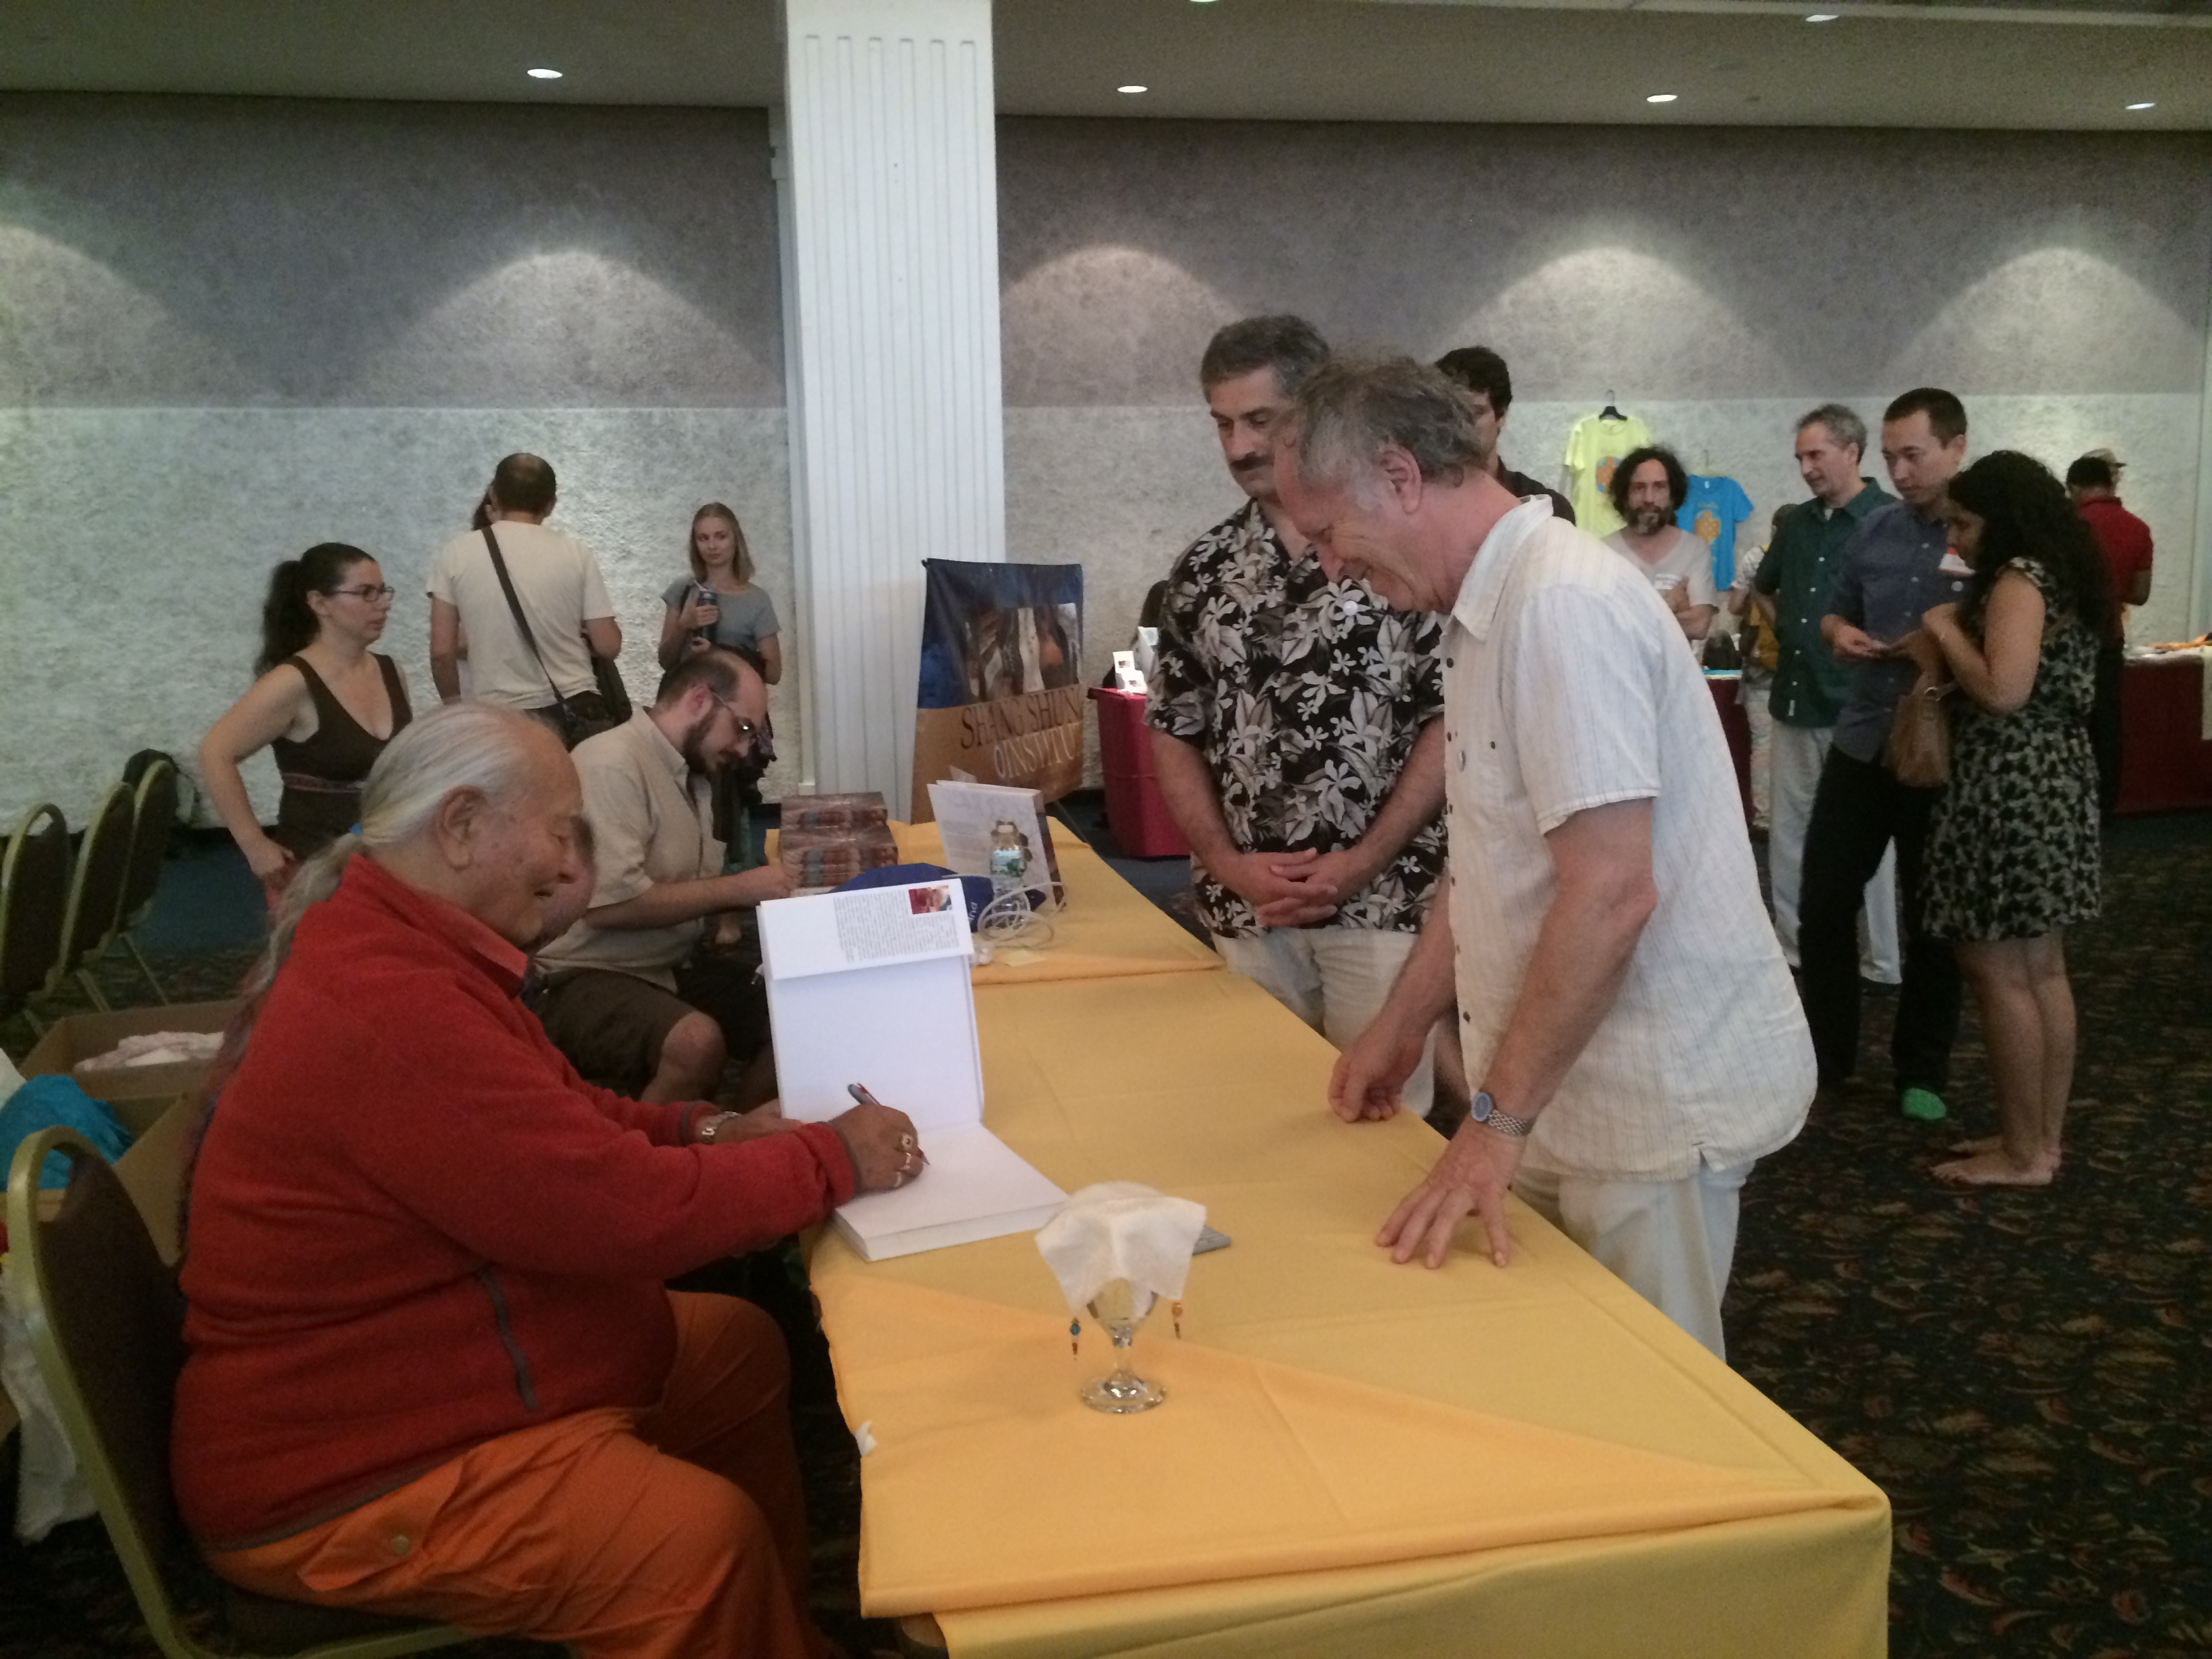 Rinpoche's signs the Merigar Gonpa book for people at the retreat